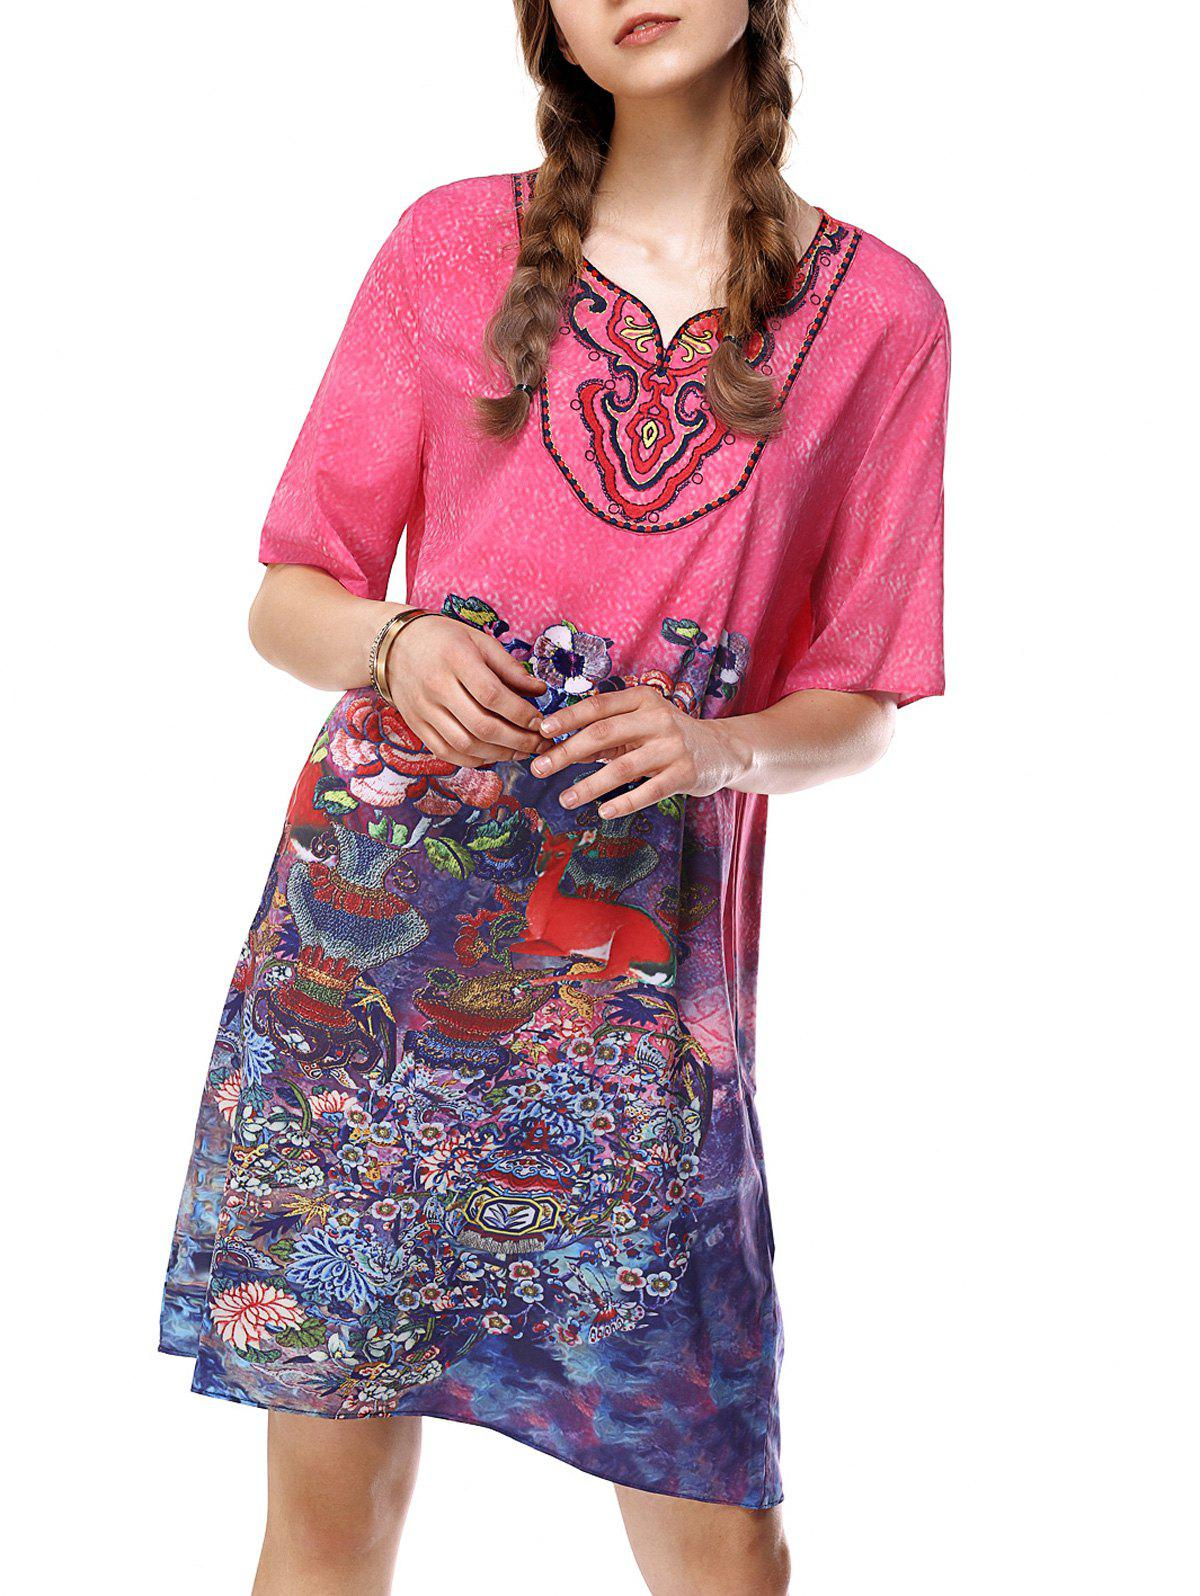 Embroidered Colorful Ethic Print Loose Dress - ROSE RED L